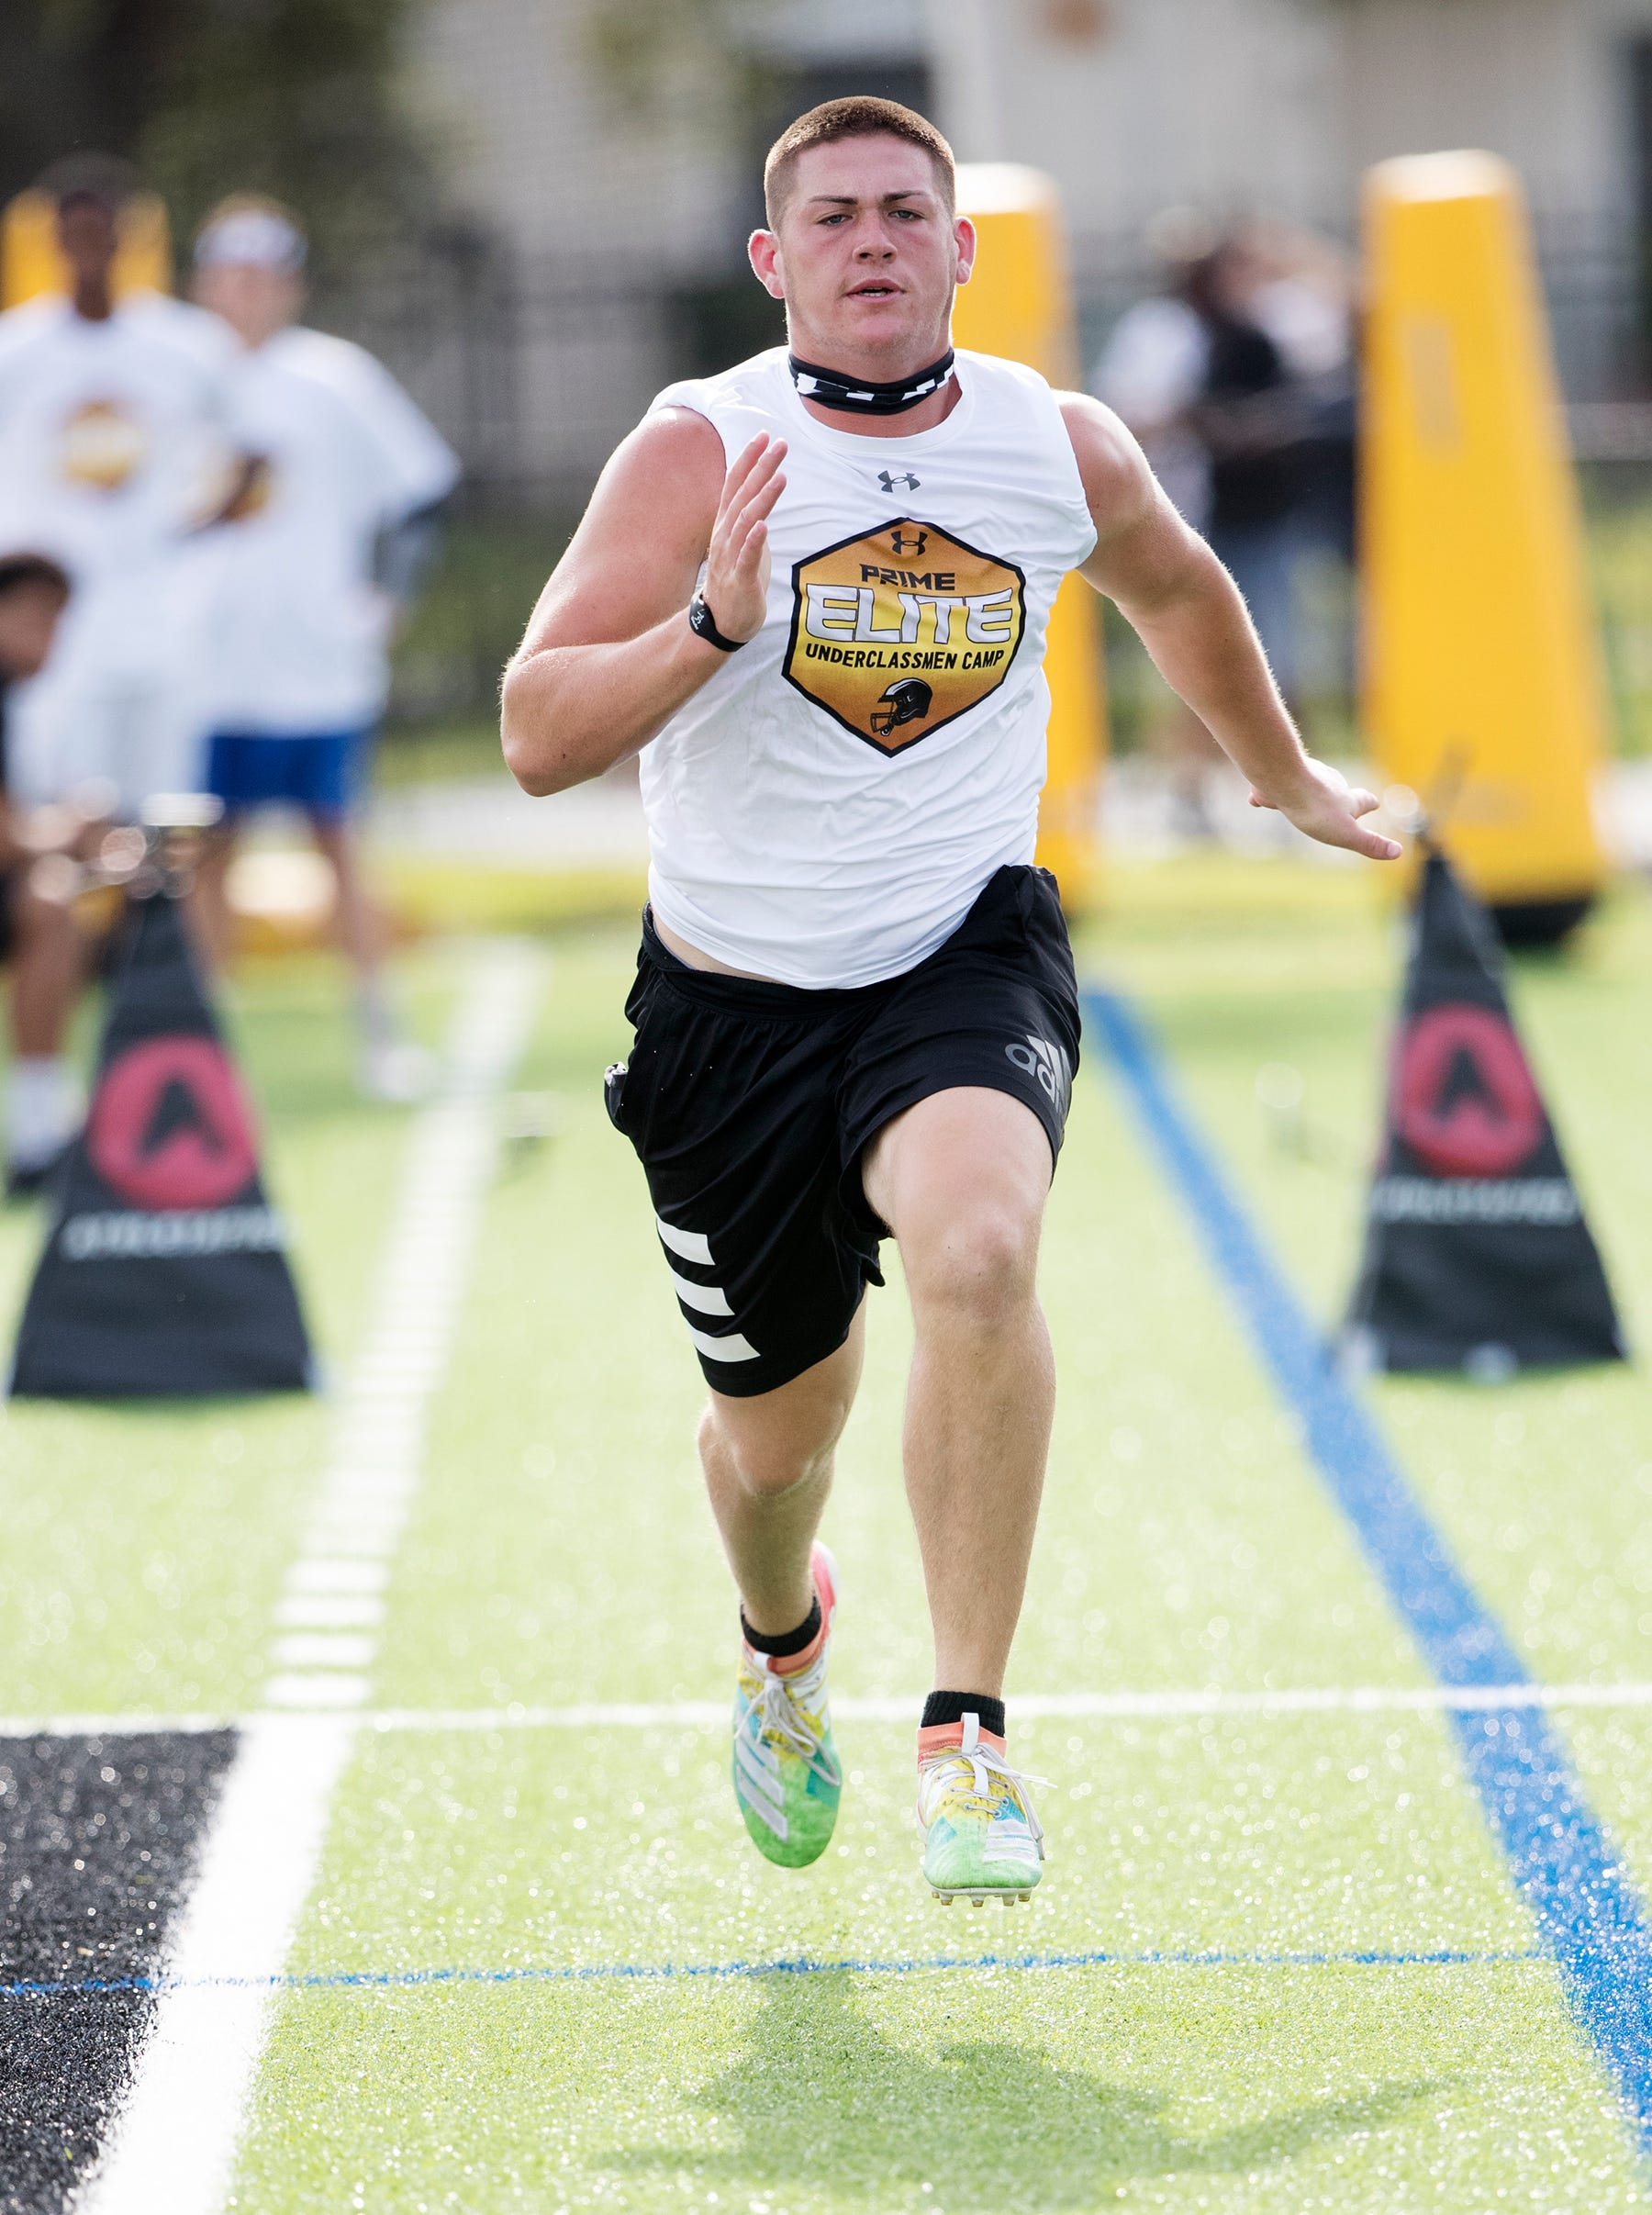 Treasure Coast High School's Keegan Davis competes in the Prime Elite Underclassmen Football Camp on Sunday at Bishop Verot in Fort Myers. More than 700 middle and high school athletes attended the camp that was put on by Under Armour and Deion Sanders.